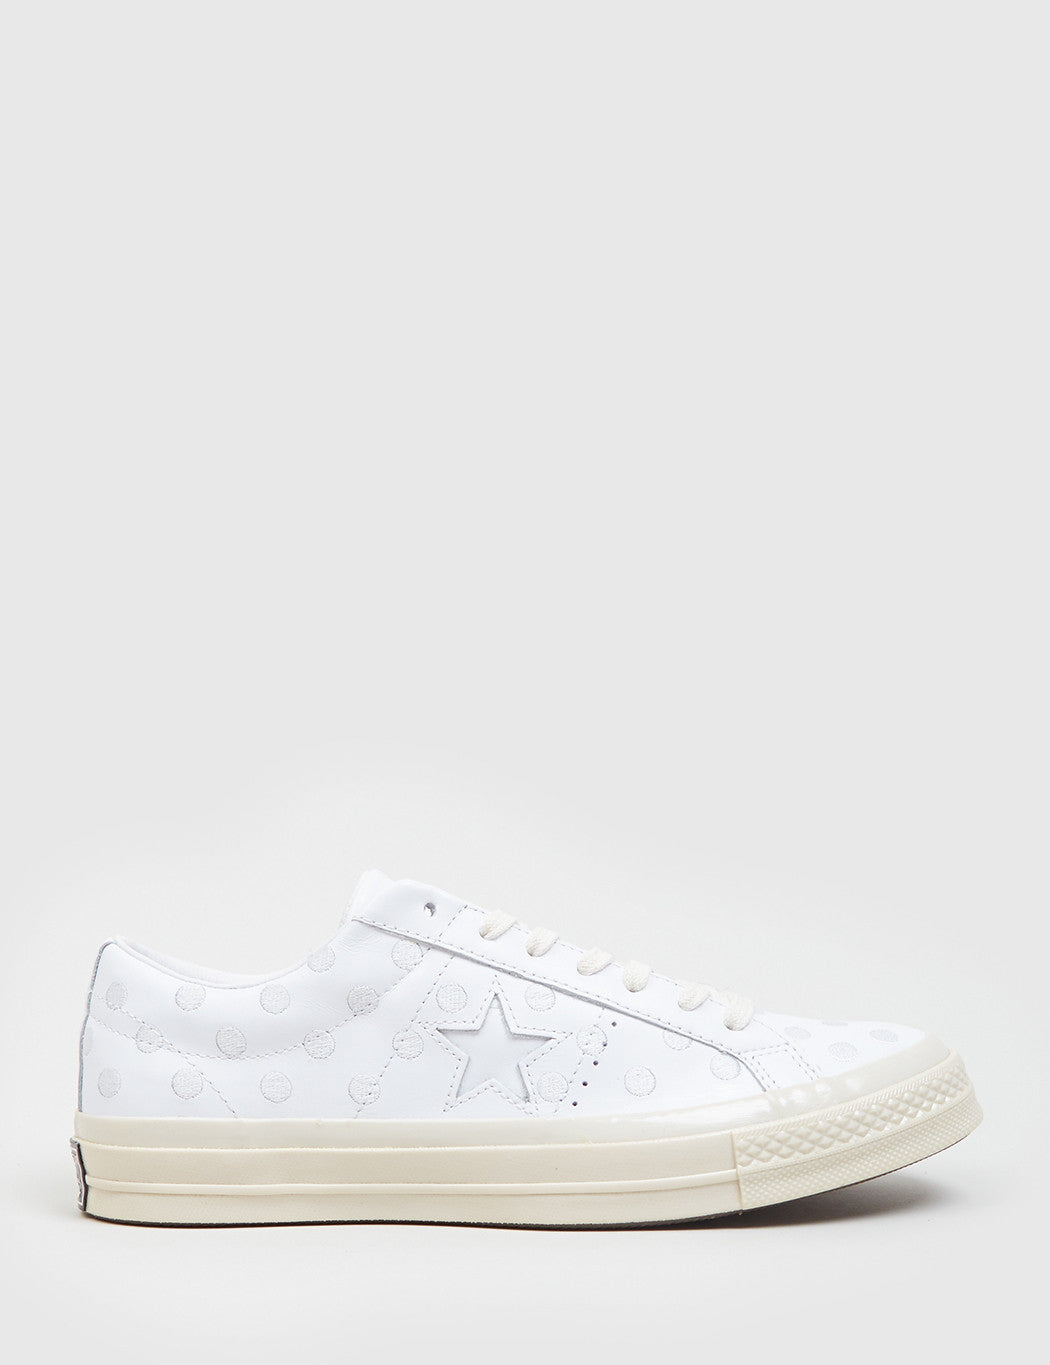 8dd3e7fb784d2f Converse Leather One Star  74 (Polkadot Leather) - White ...